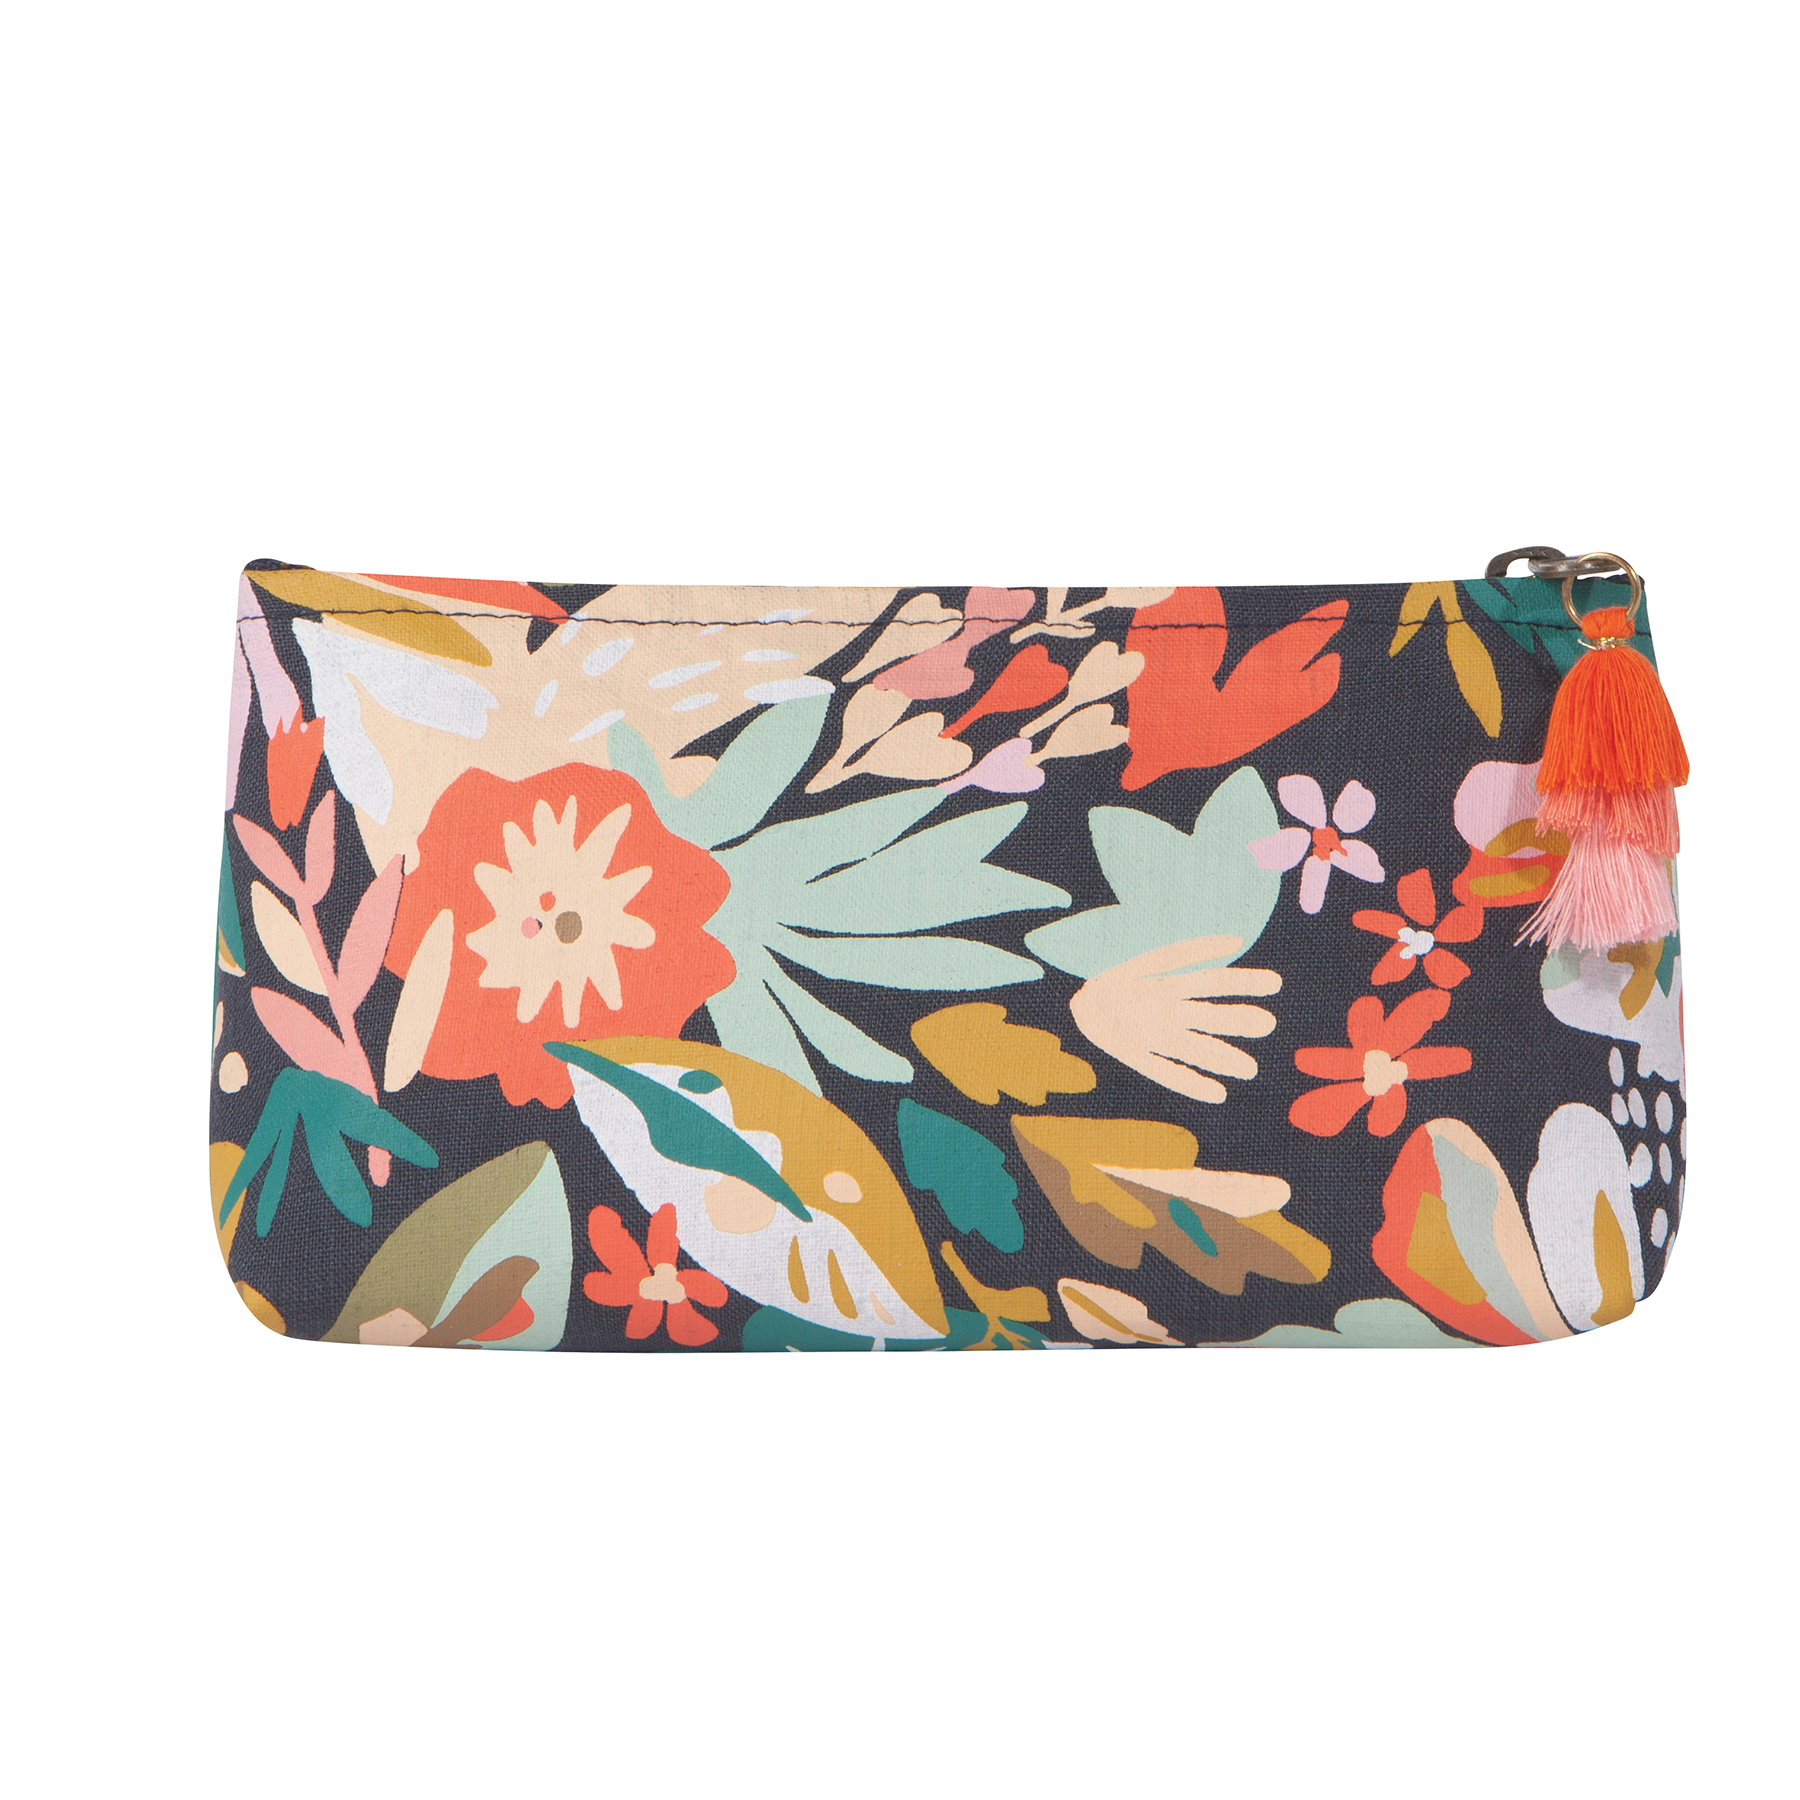 Toiletry Bag Small - Superbloom